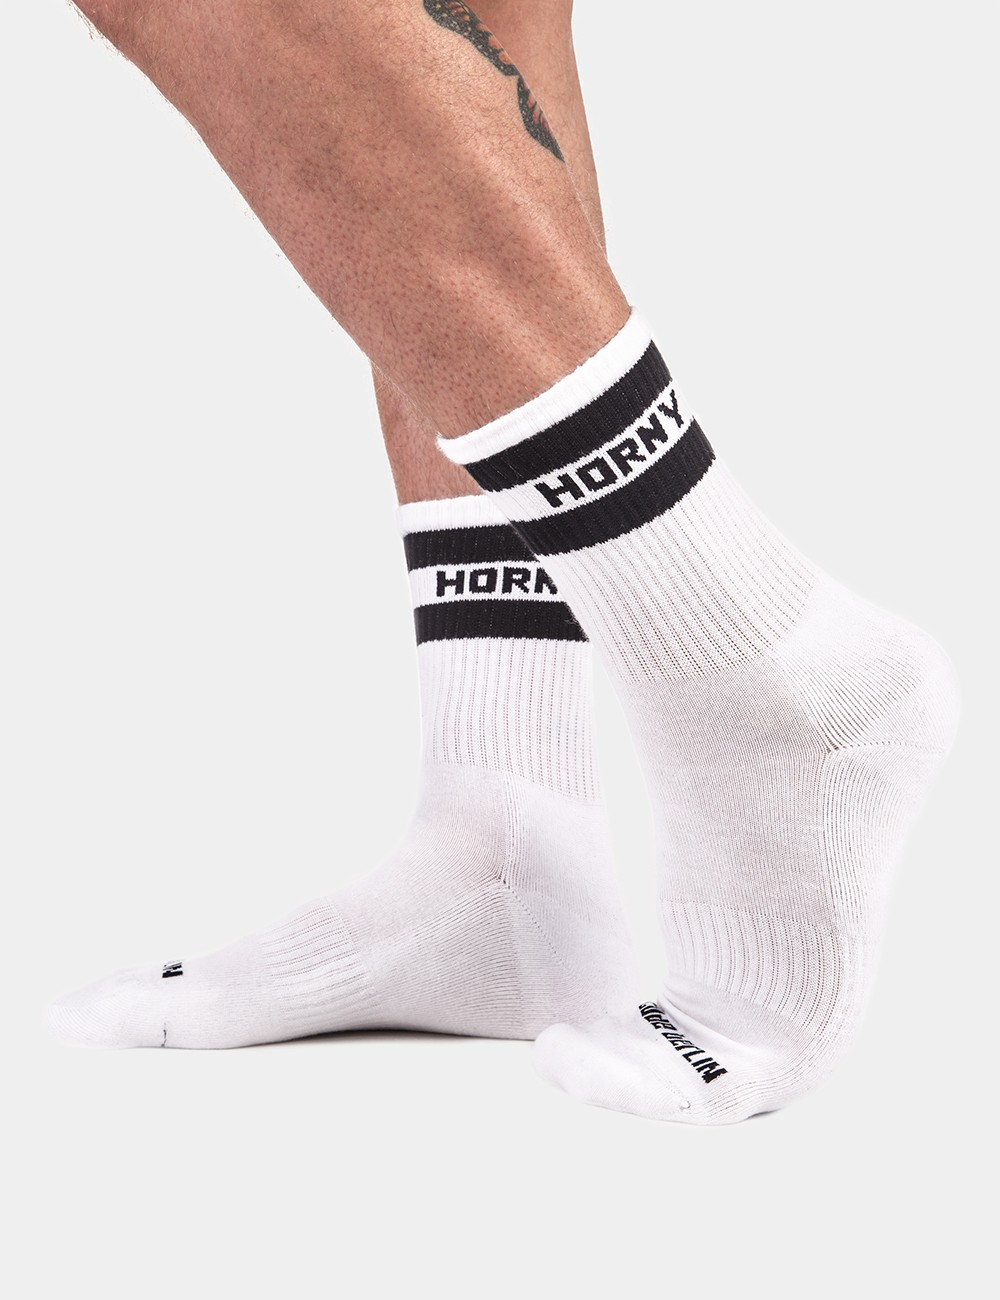 Sock Fetish Pictures photo 4